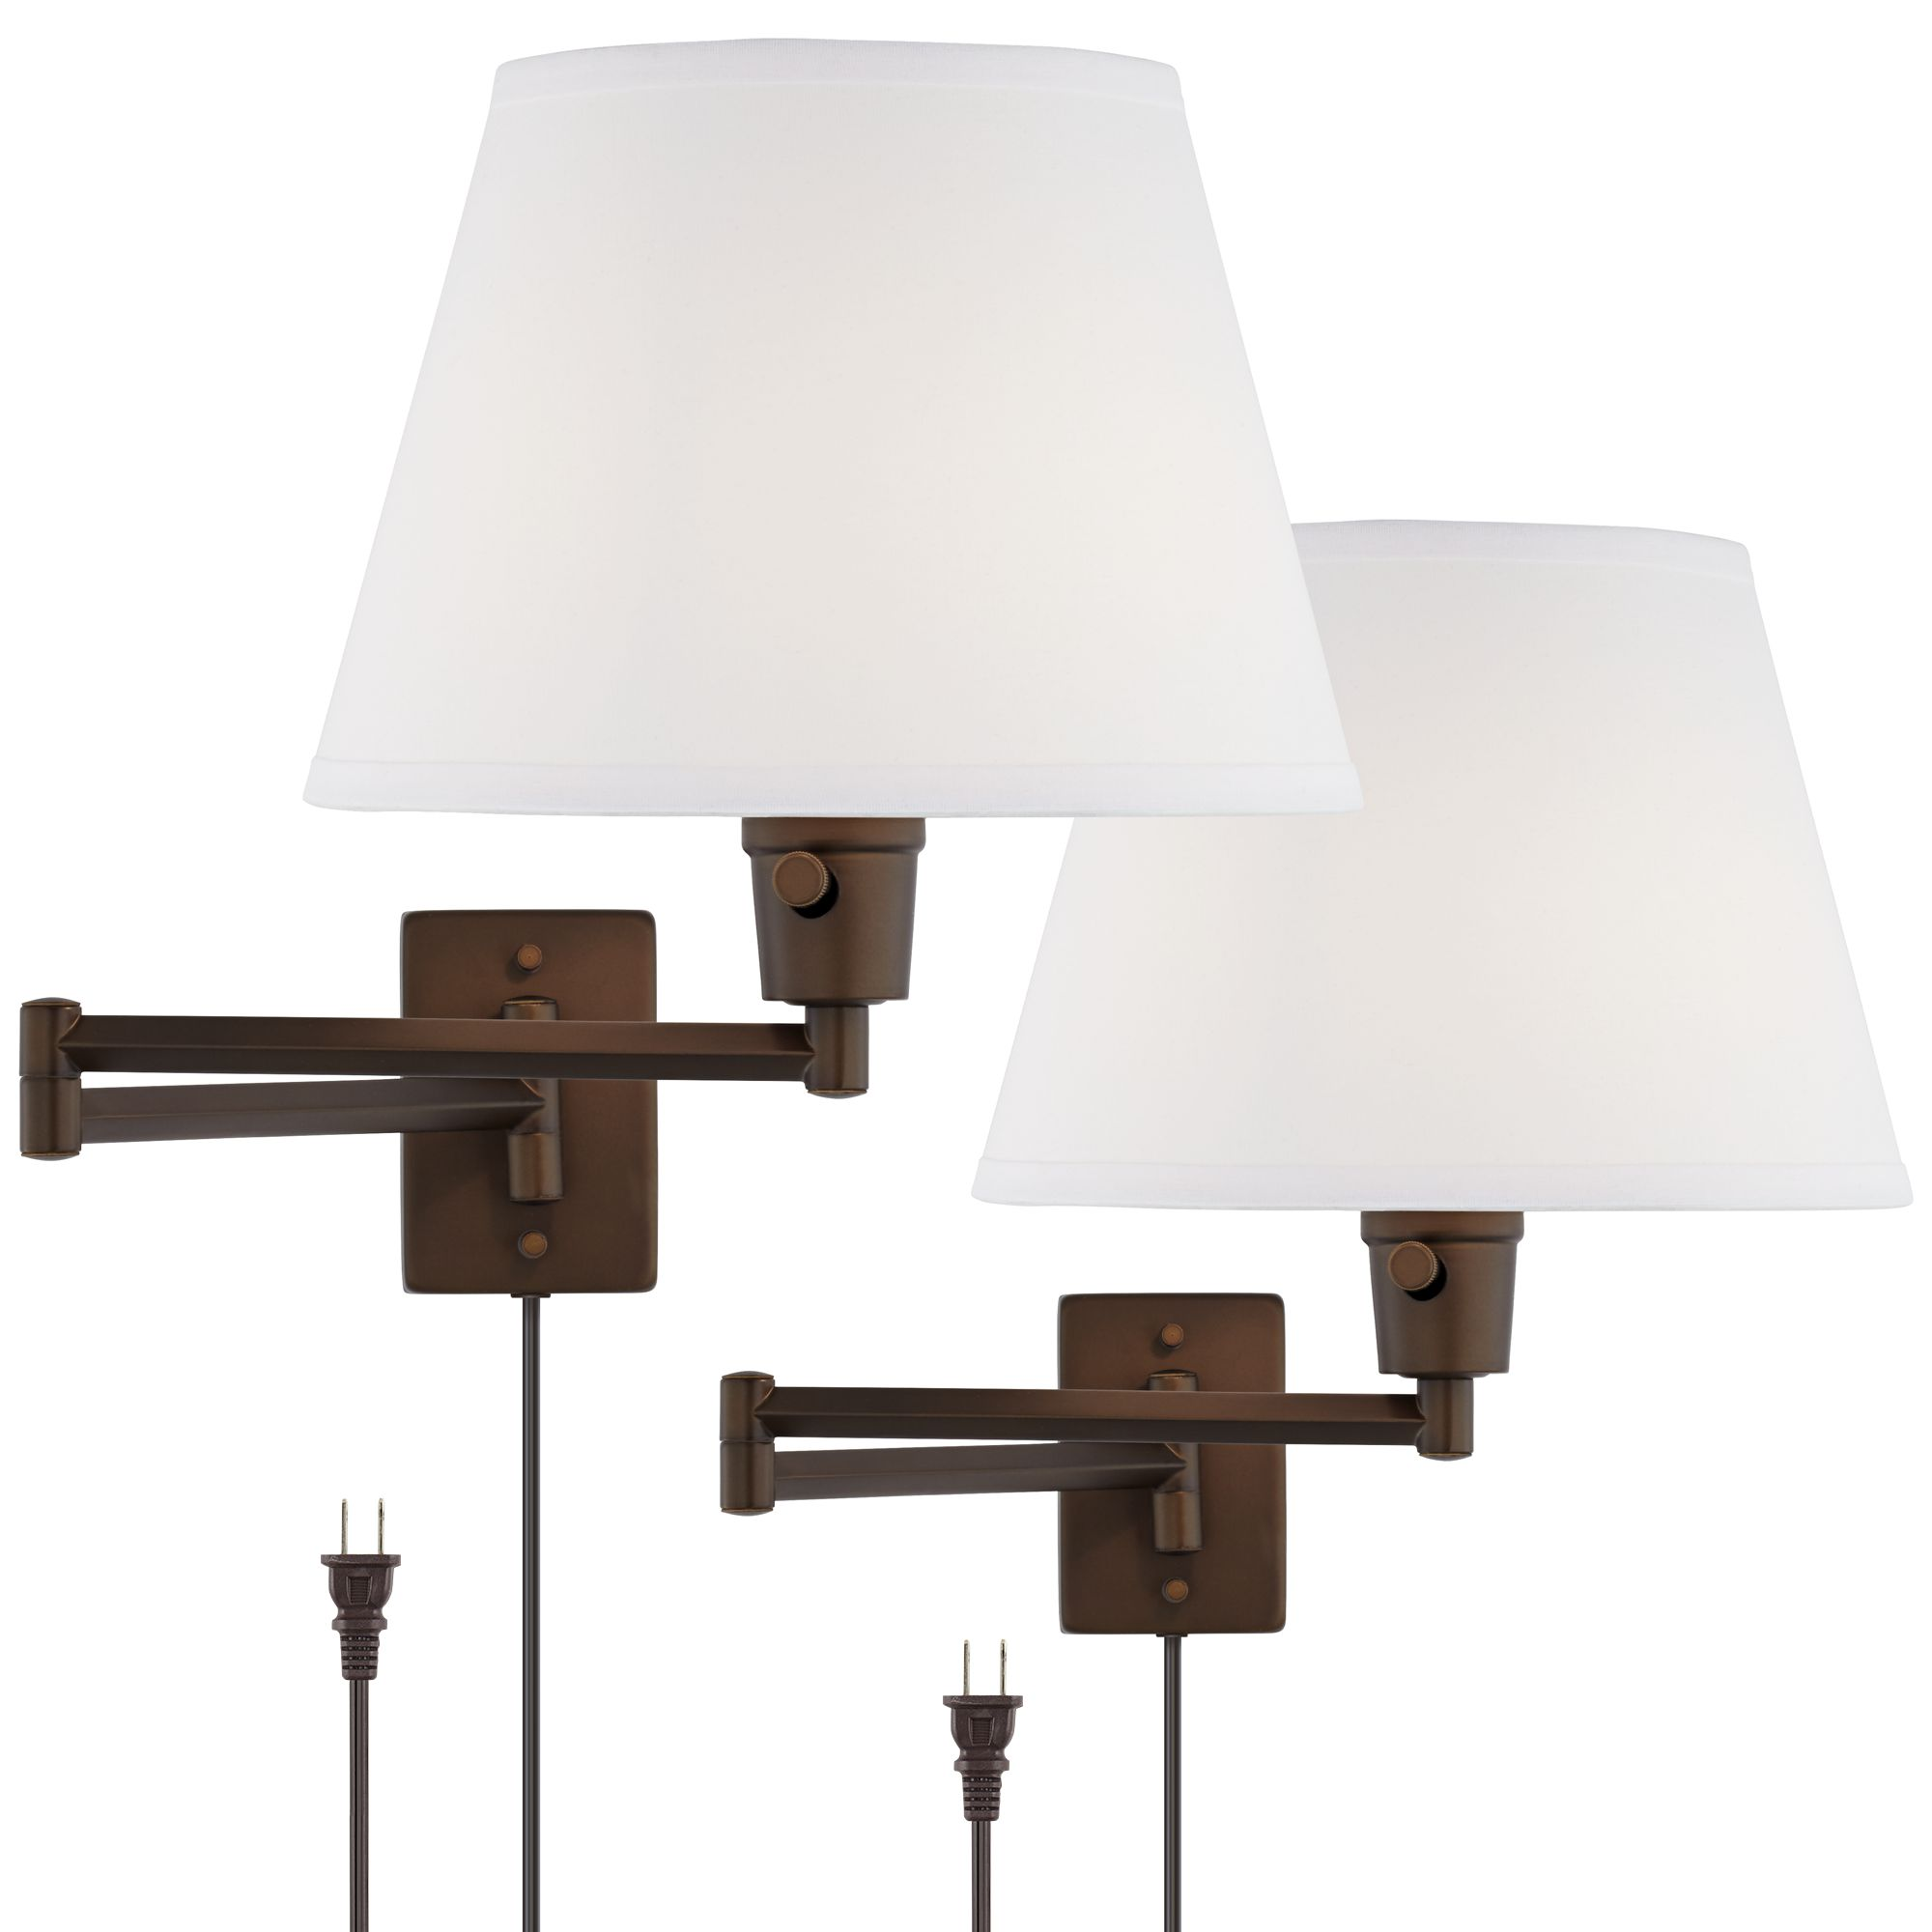 Latest Clement Plugin Swing Arm Wall Lamp Set Of In Bronze V Lamps Plus  With Lampsplus Com.